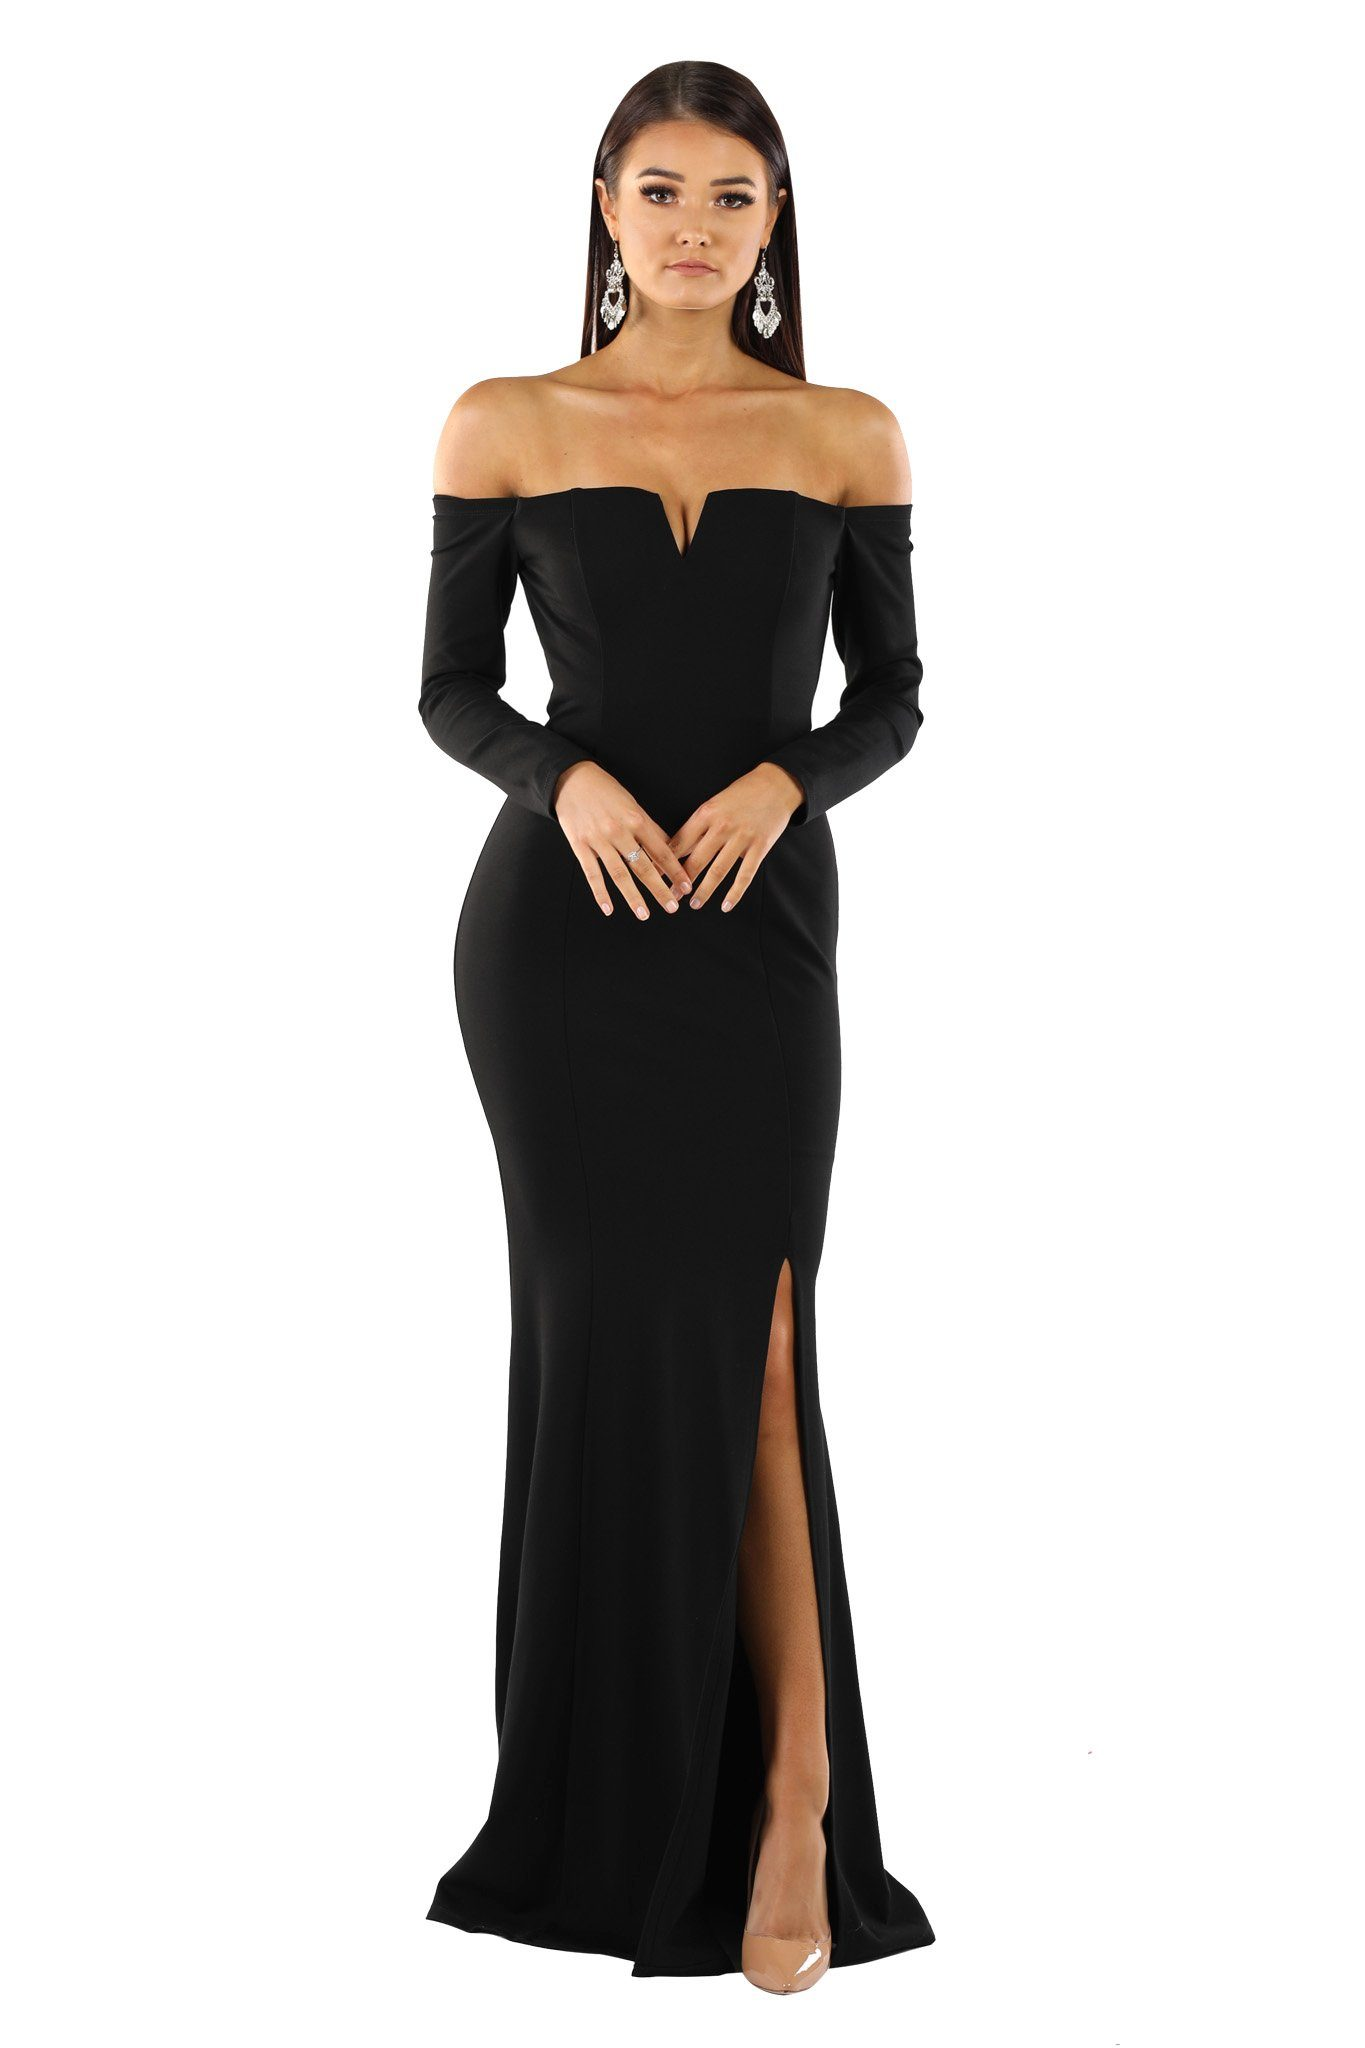 Black fitted long sleeve floor length evening gown with off-shoulder bodice, V-wired neckline, high slit and slightly flared skirt